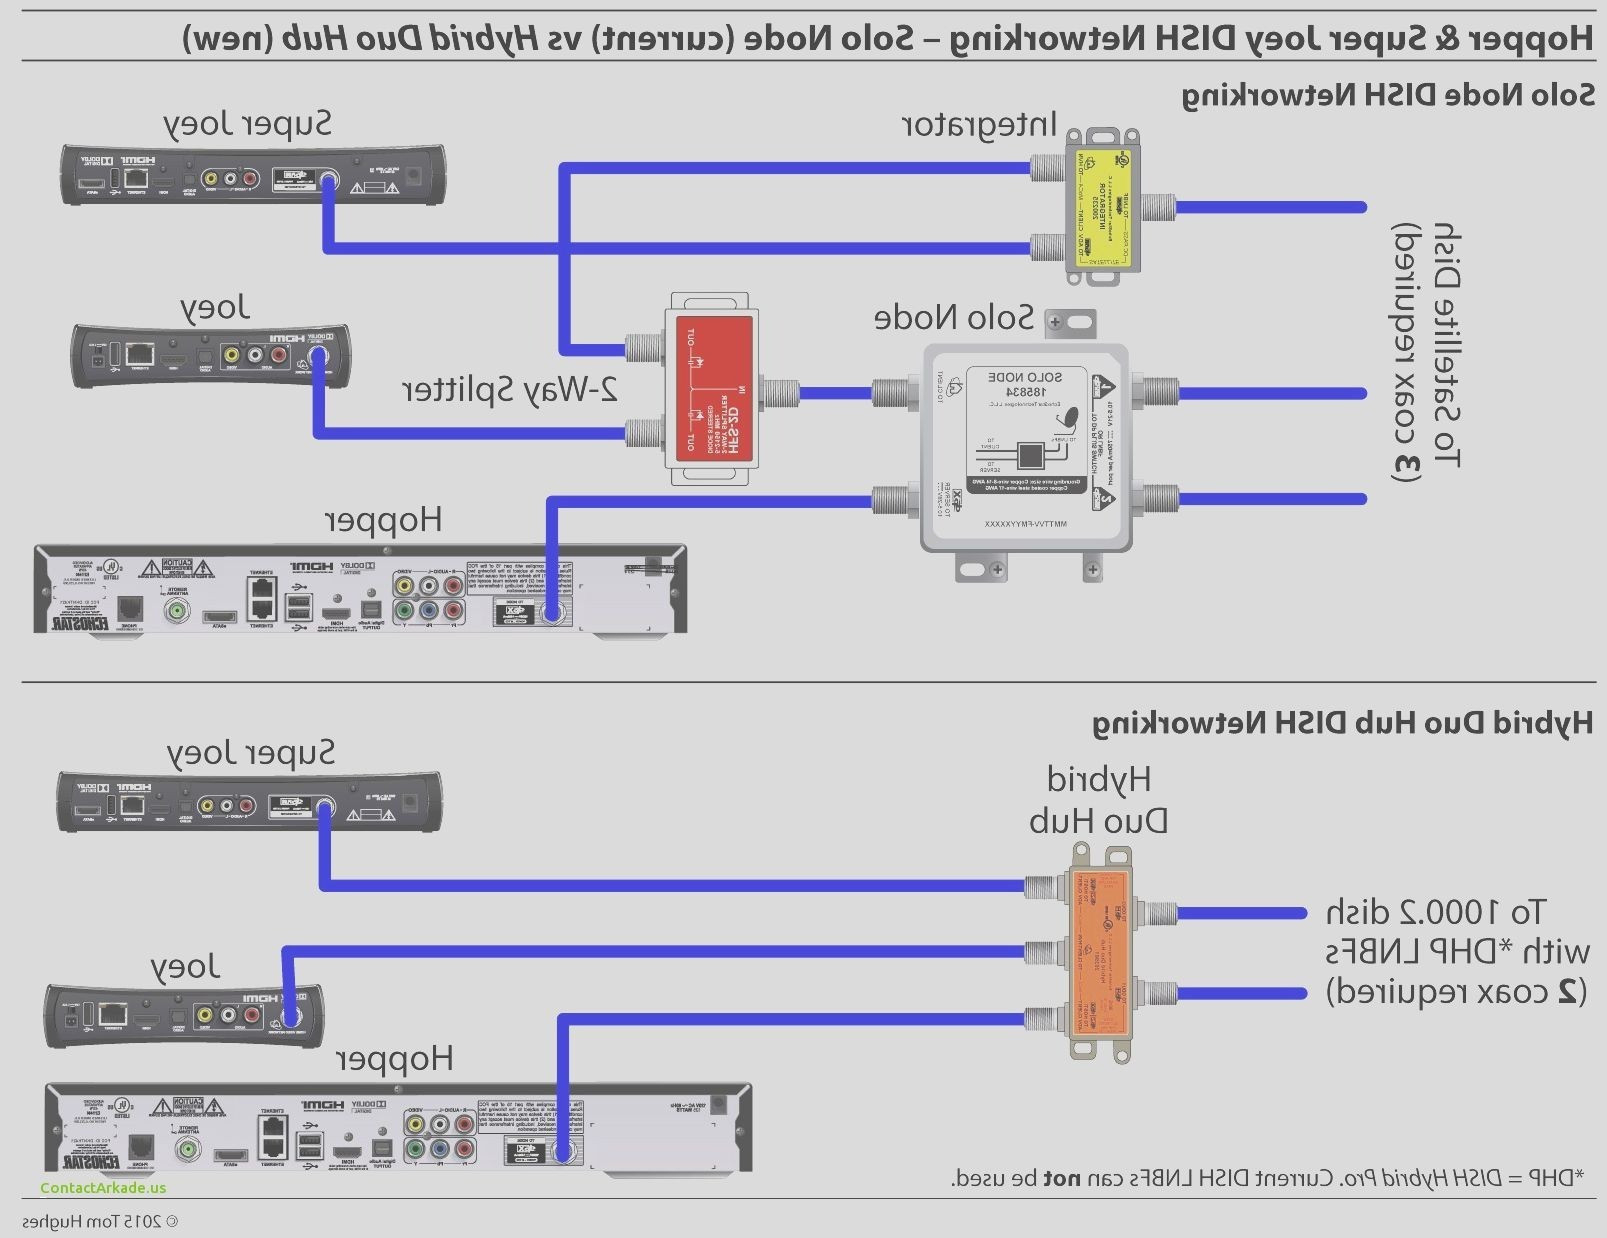 True Gdm 72f Wiring Diagram Download Sample Beverage Air Freezer Ethernet Cable For A Cat5 New Cat5e Wire